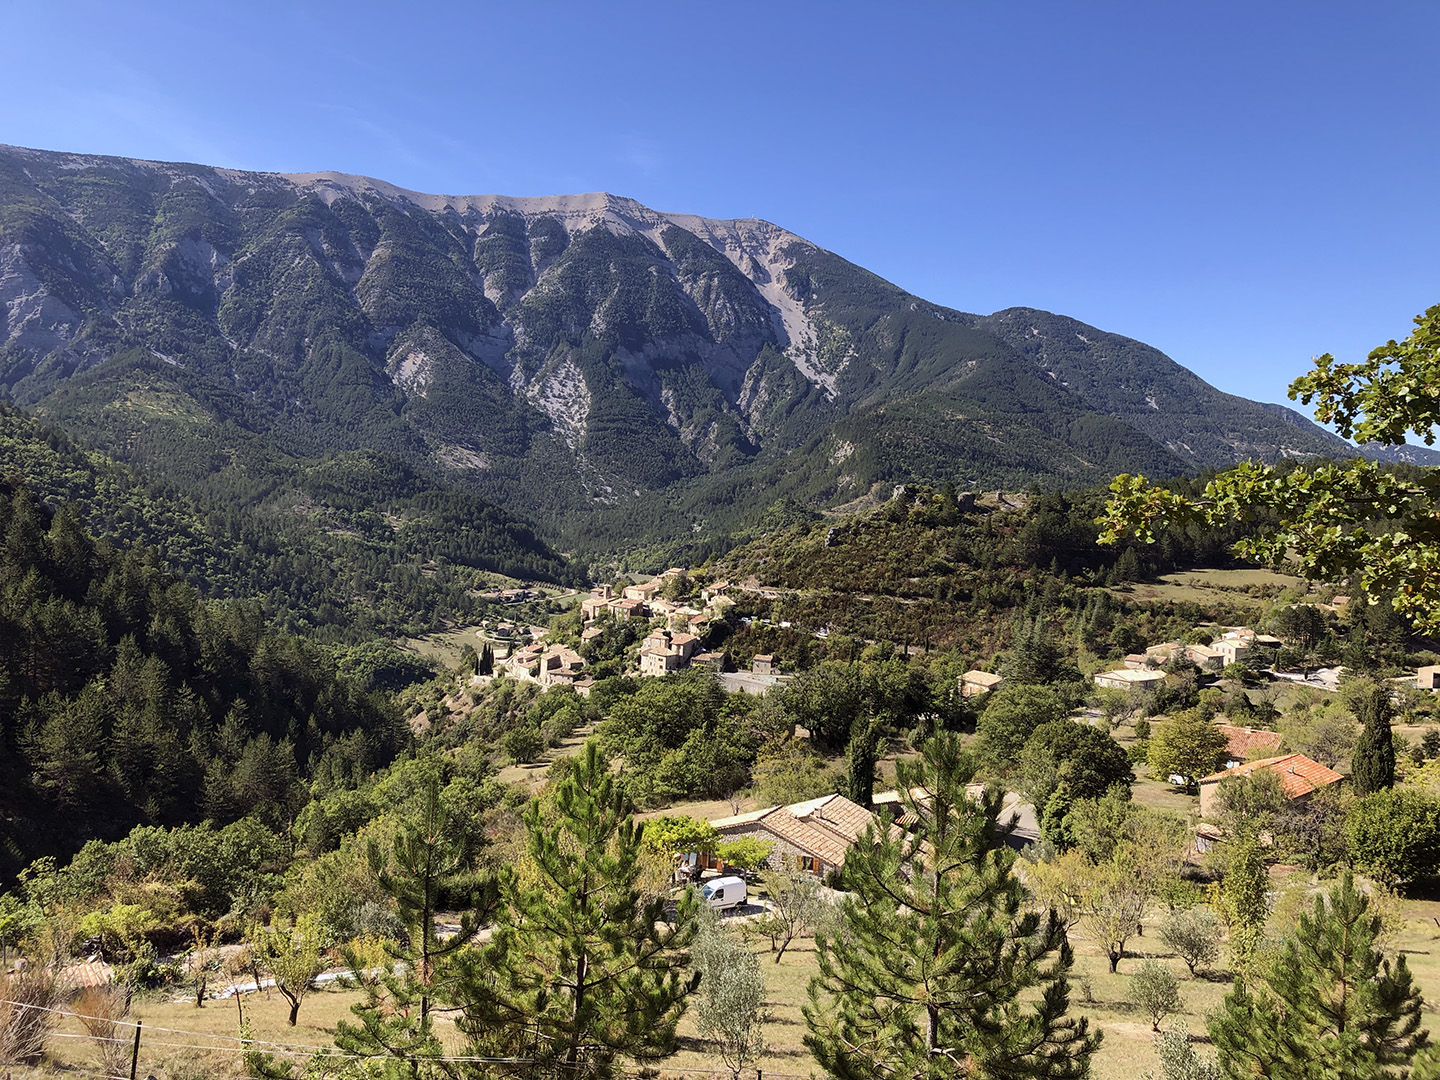 The beautiful perched village of Brantes in the distance.